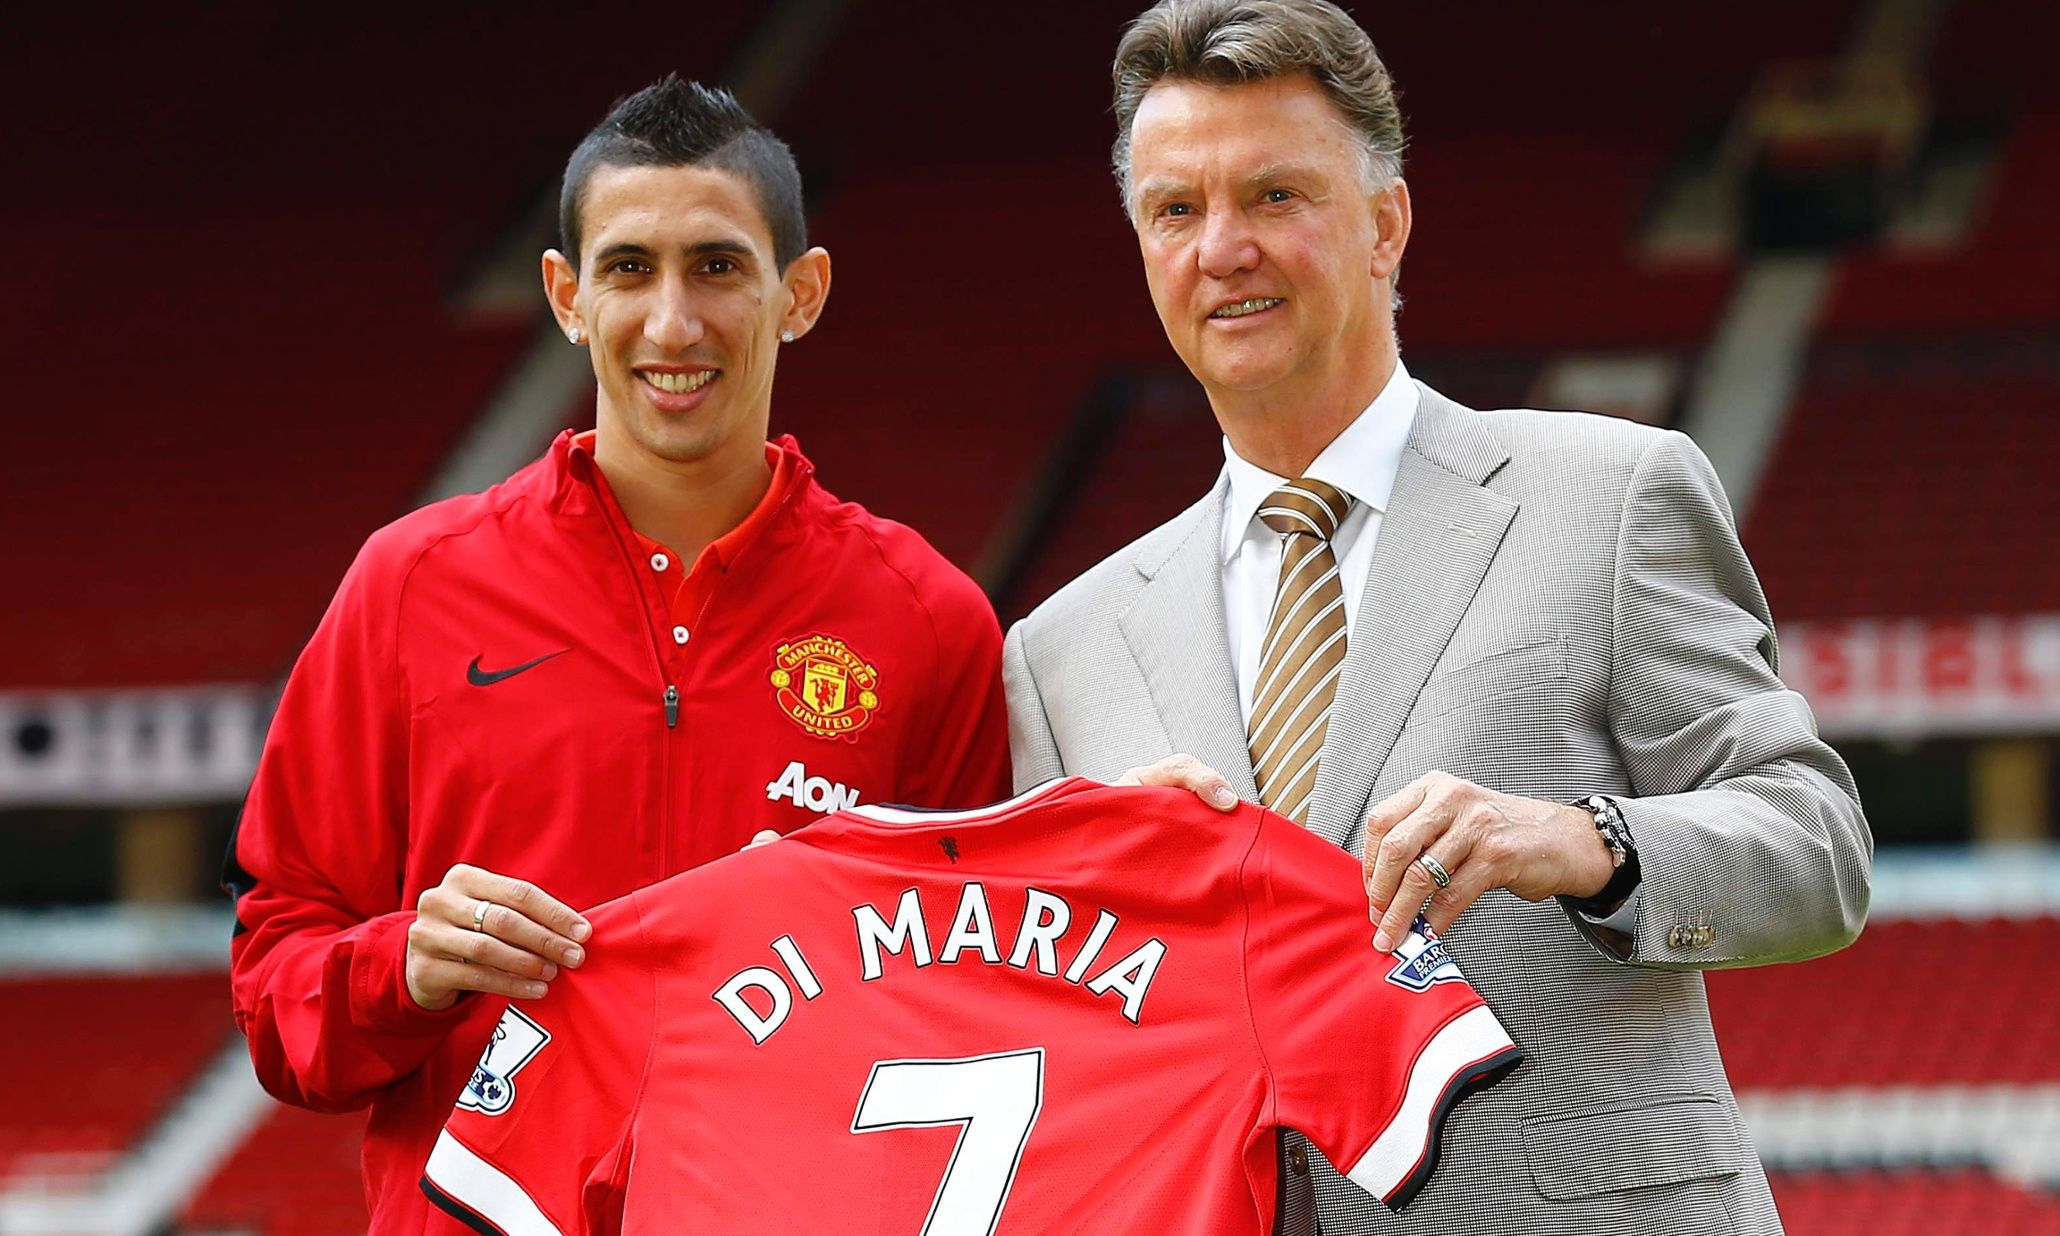 A Retired Manager Gets 108 000 A Day So Why Can T Football Pay The Living Wage Ian Jack Manchester United Shirt Angel Di Maria Manchester United